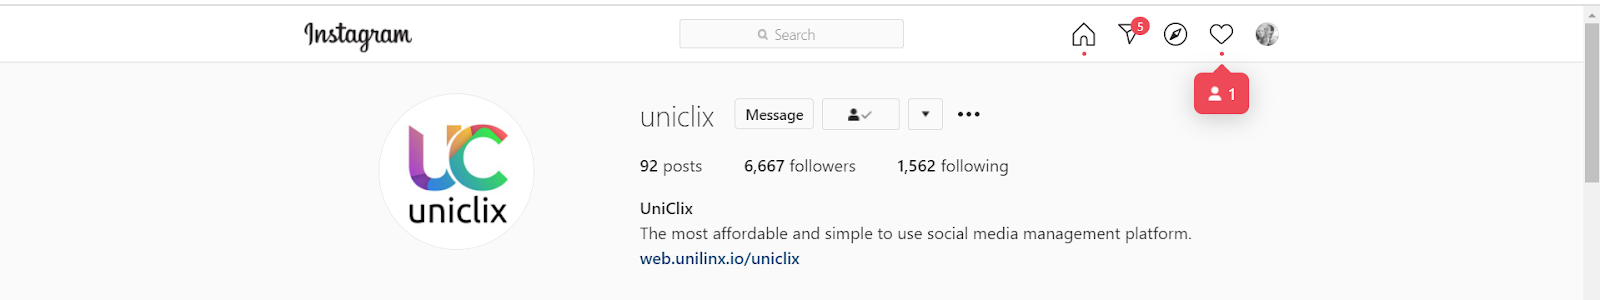 Uniclix Instagram Growth